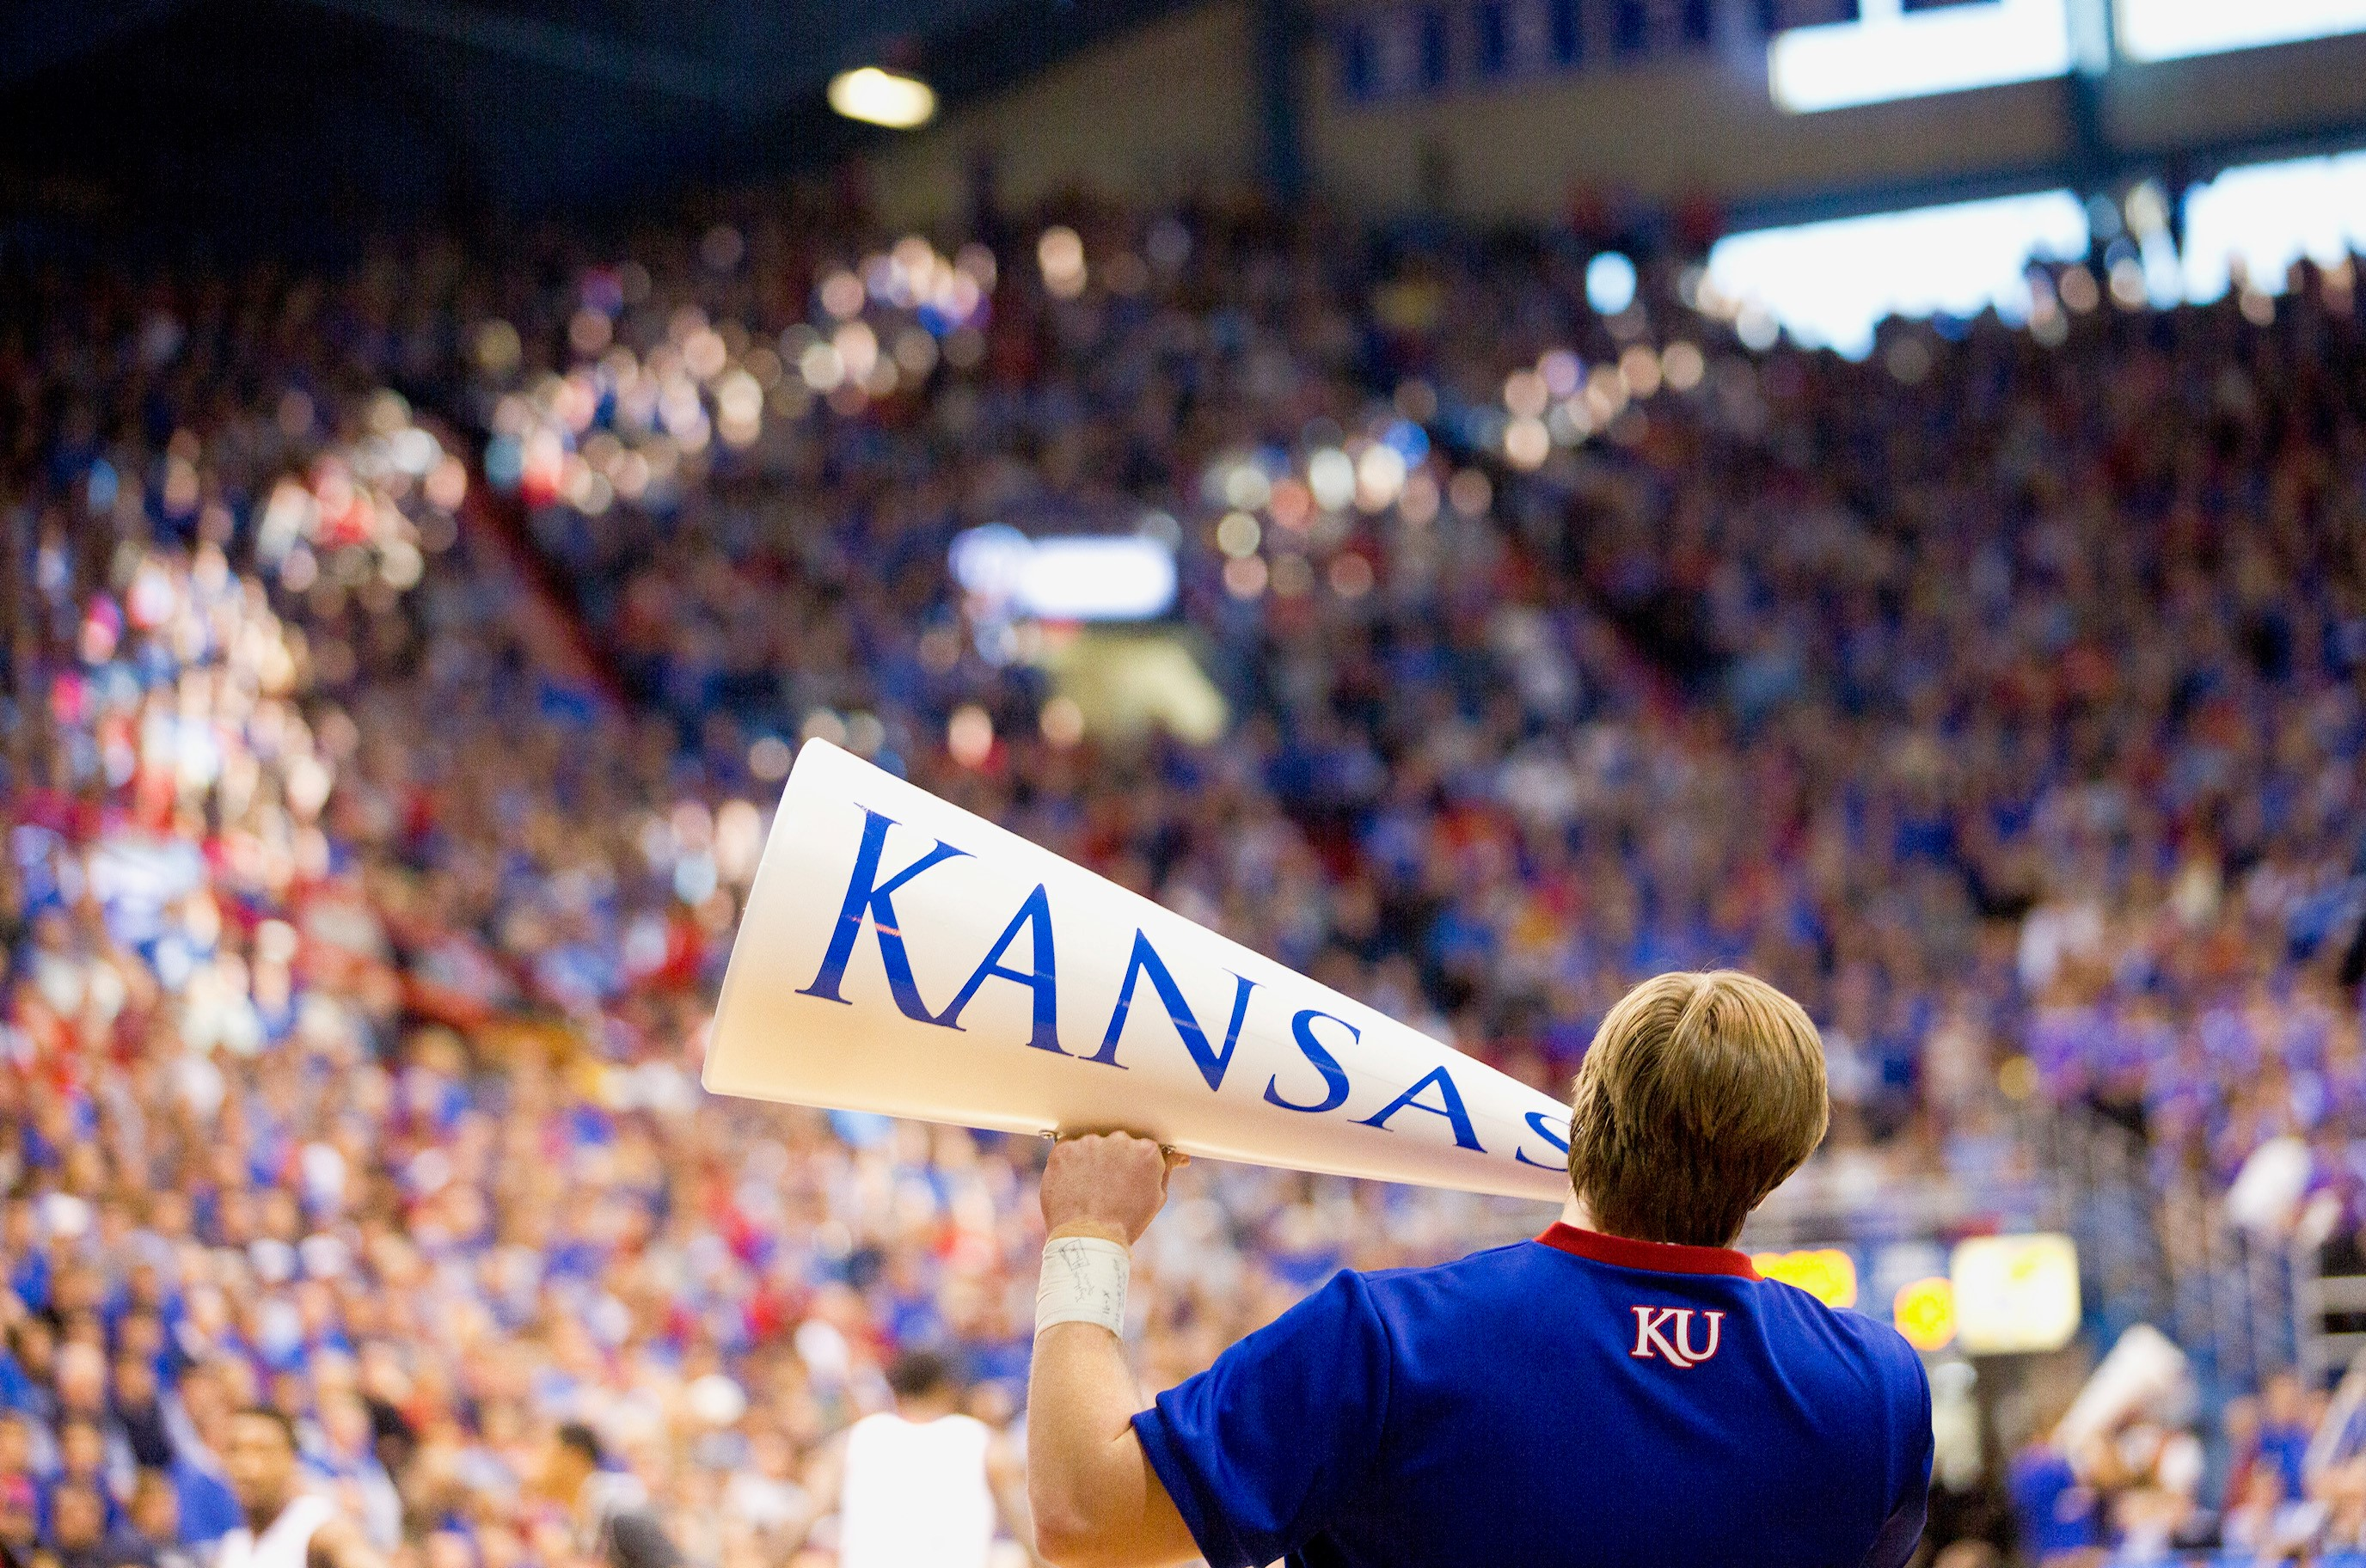 Stakeholder Highlight: KU Athletics Launches Groundbreaking New Model for Student-Athlete Care